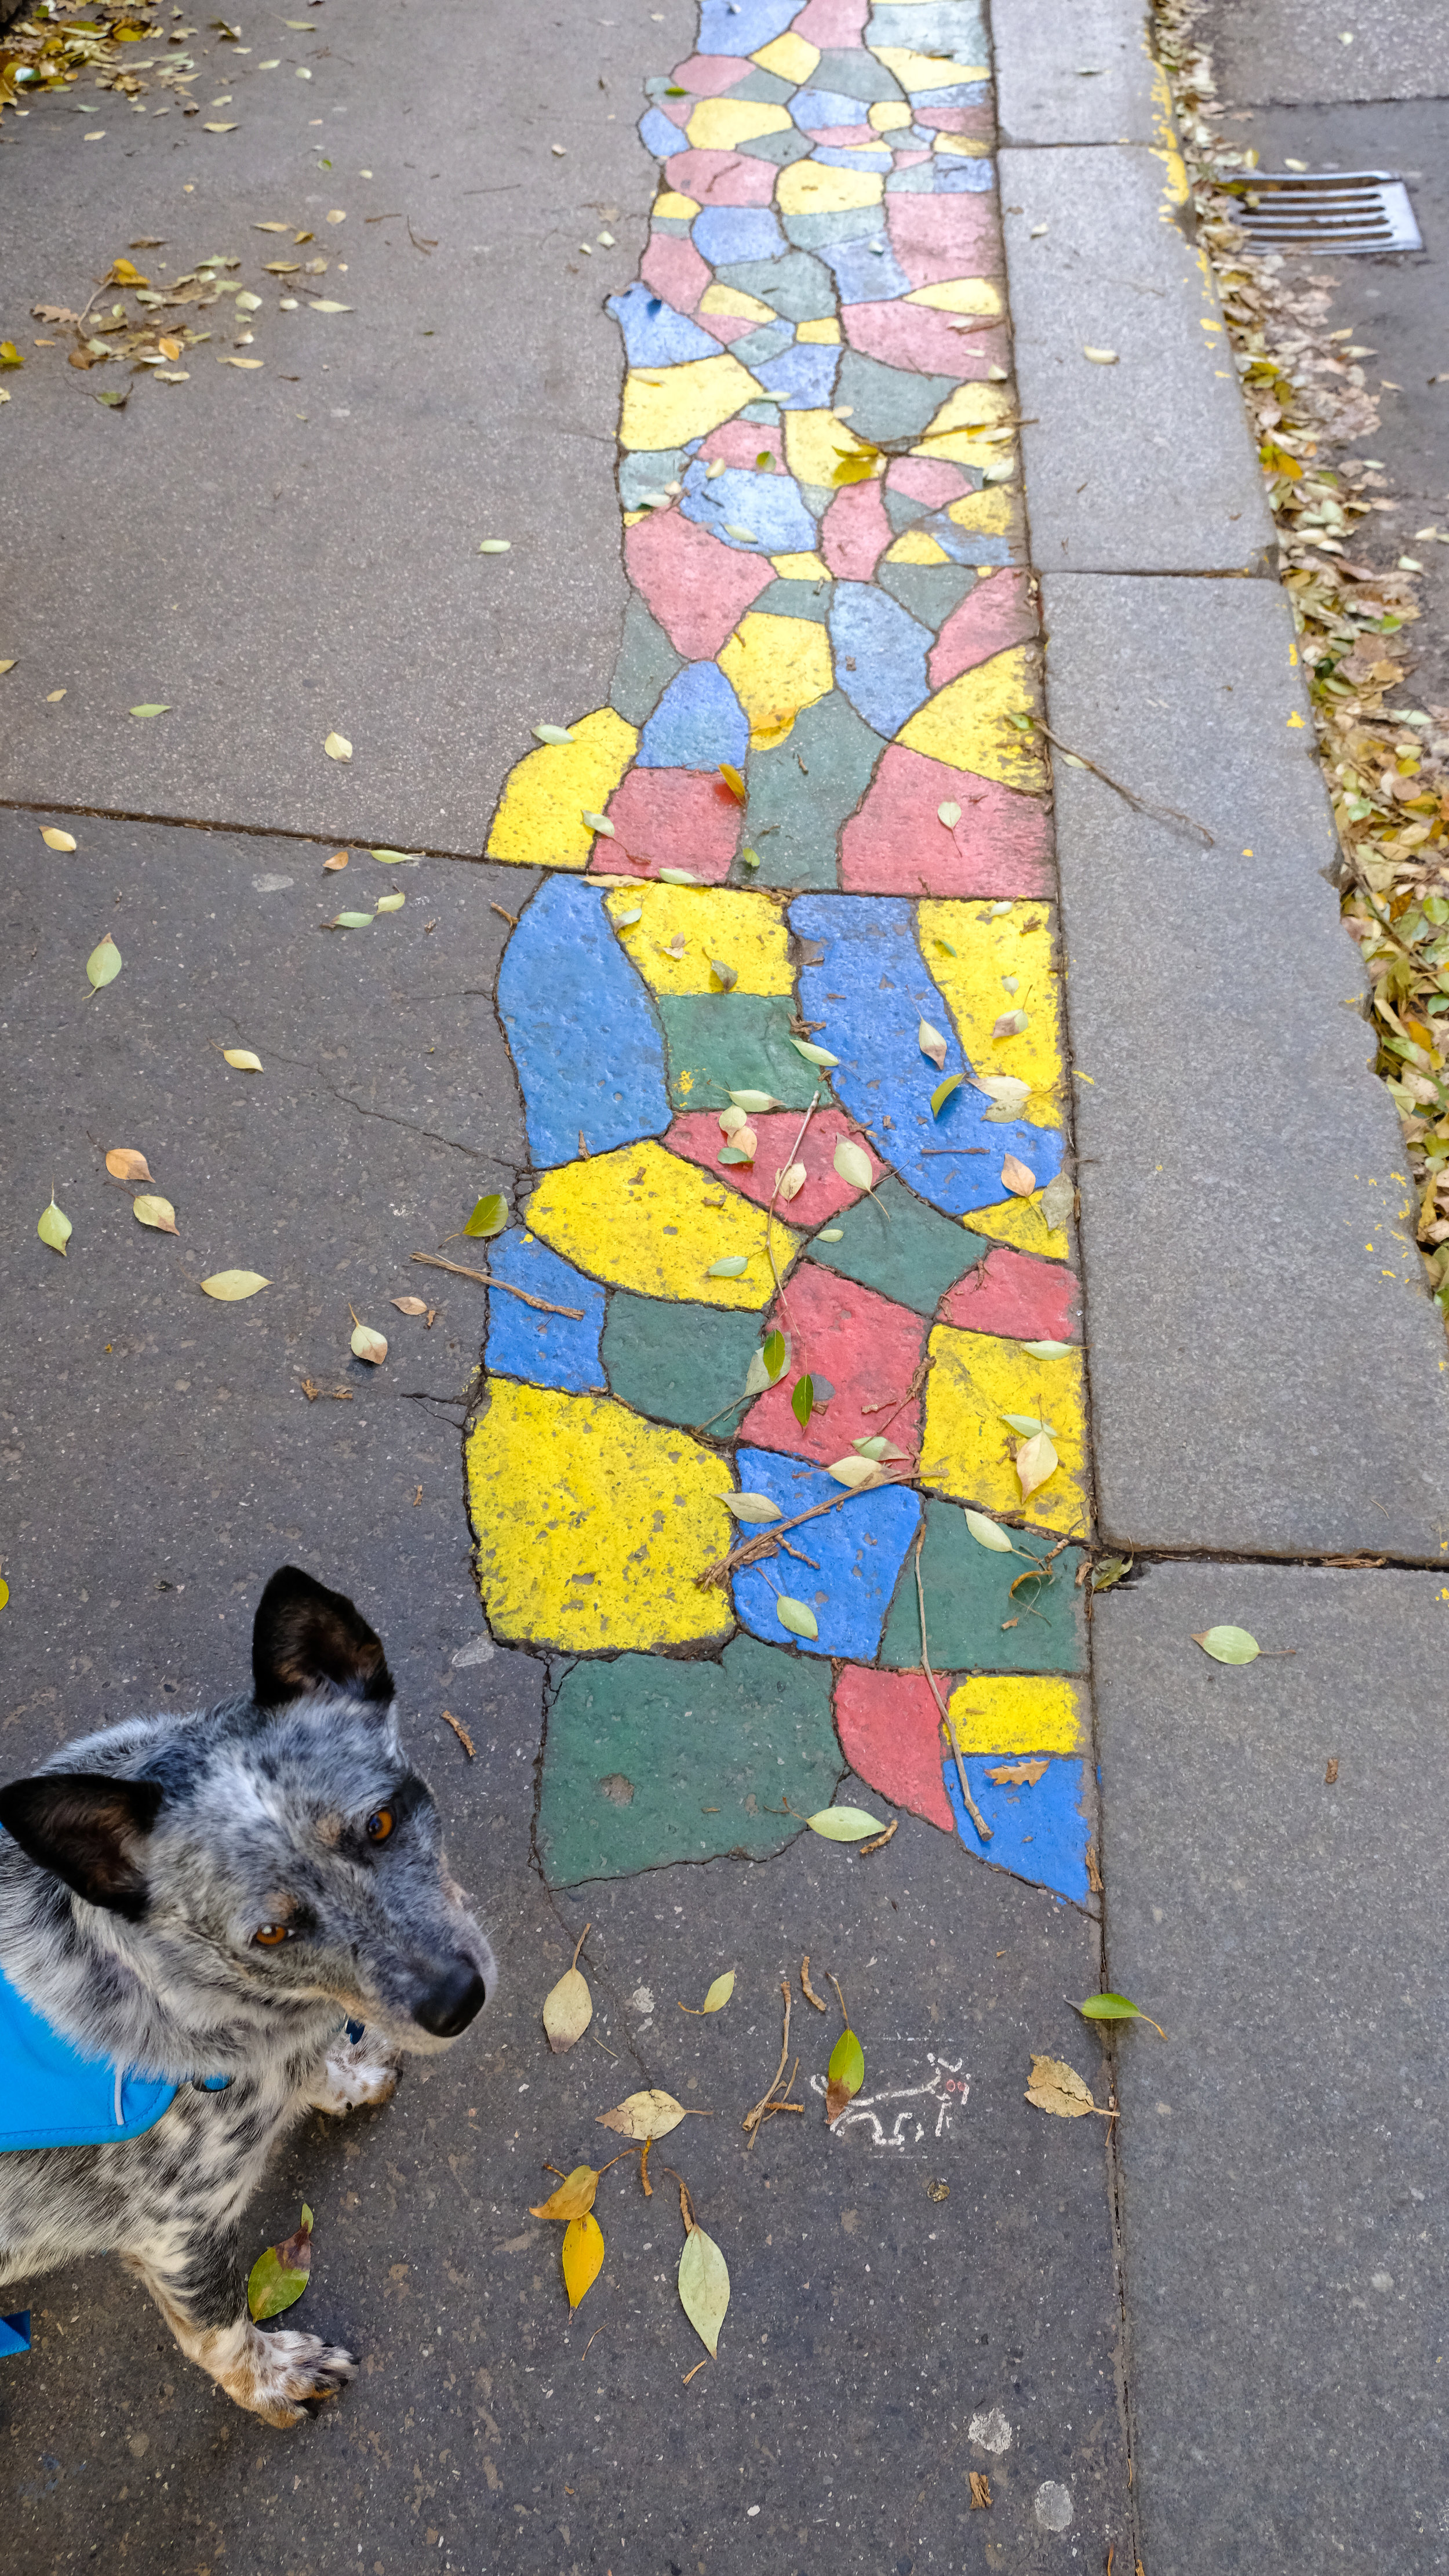 Sidewalk art with the iconic symbol for Budapest's satirical political party, Two-Tailed Dog. These colorfully painted sidewalk cracks can be seen in many places around the city… and are said to be a statement to the government regarding the poor state of infrastructure in some places.